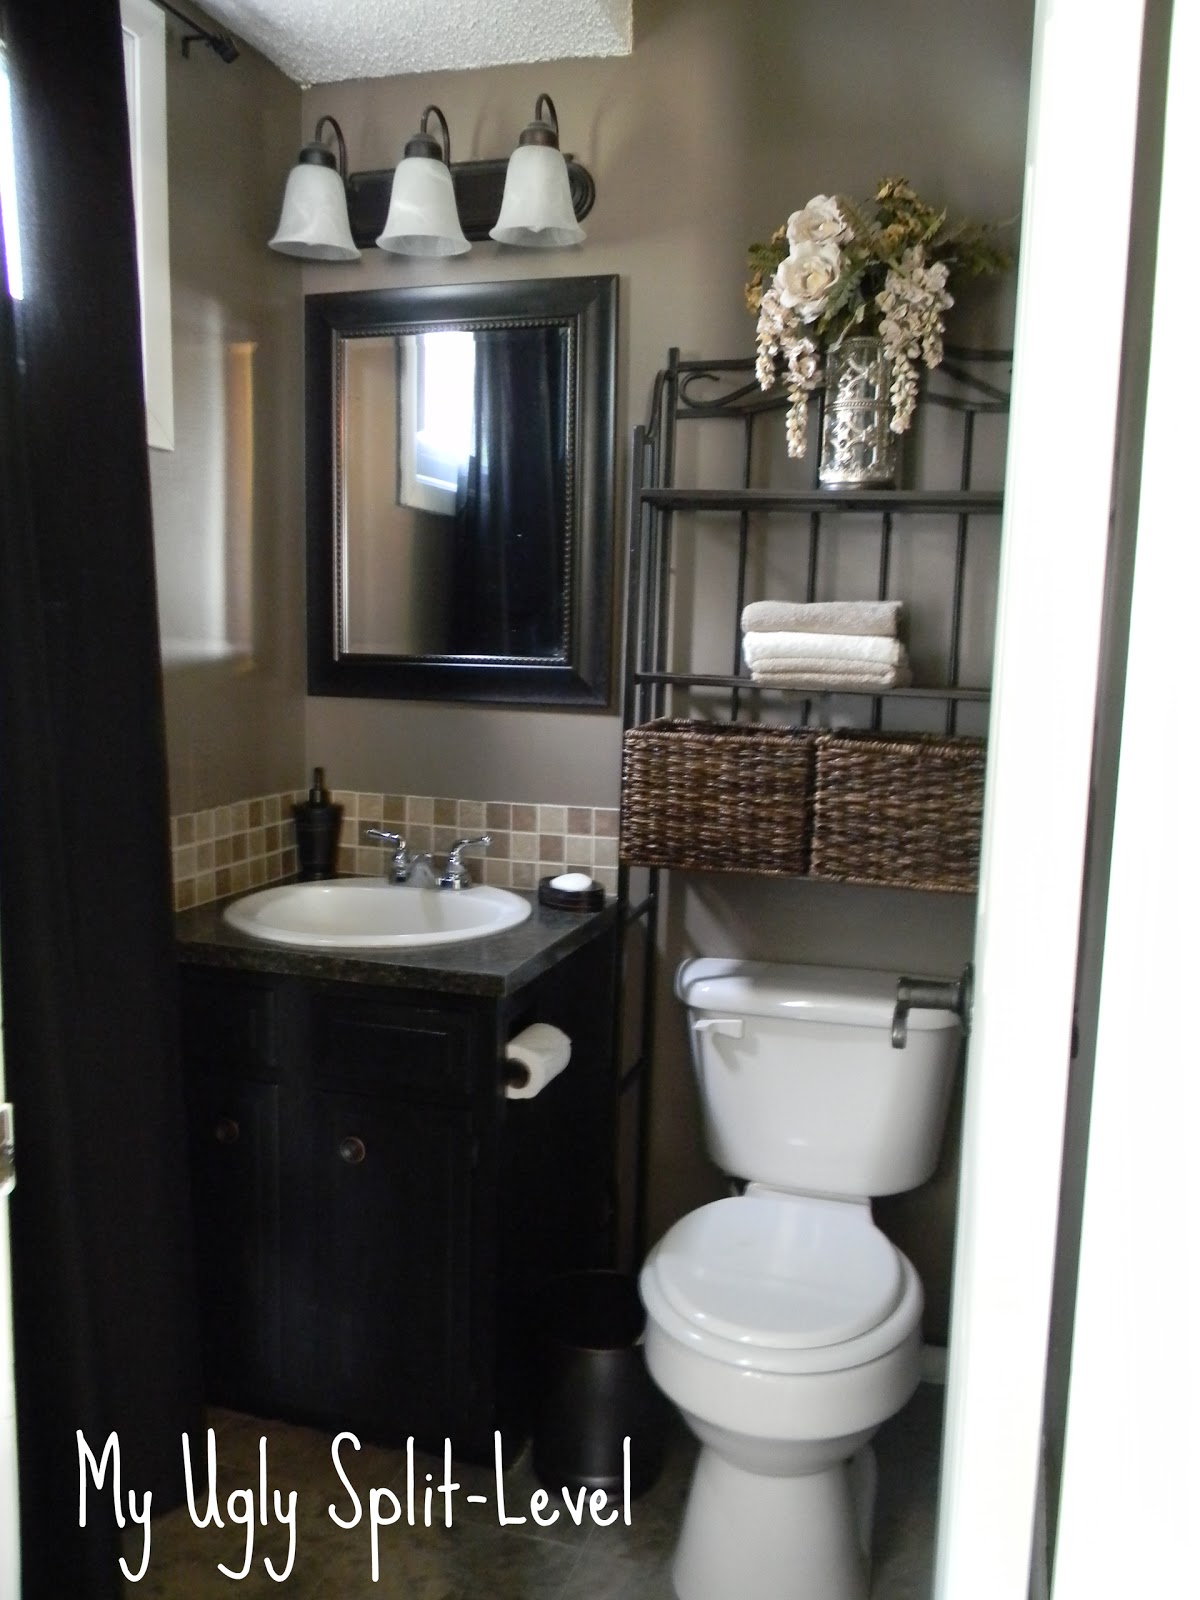 My ugly split level the back bathroom for Bathroom decorating ideas on a budget